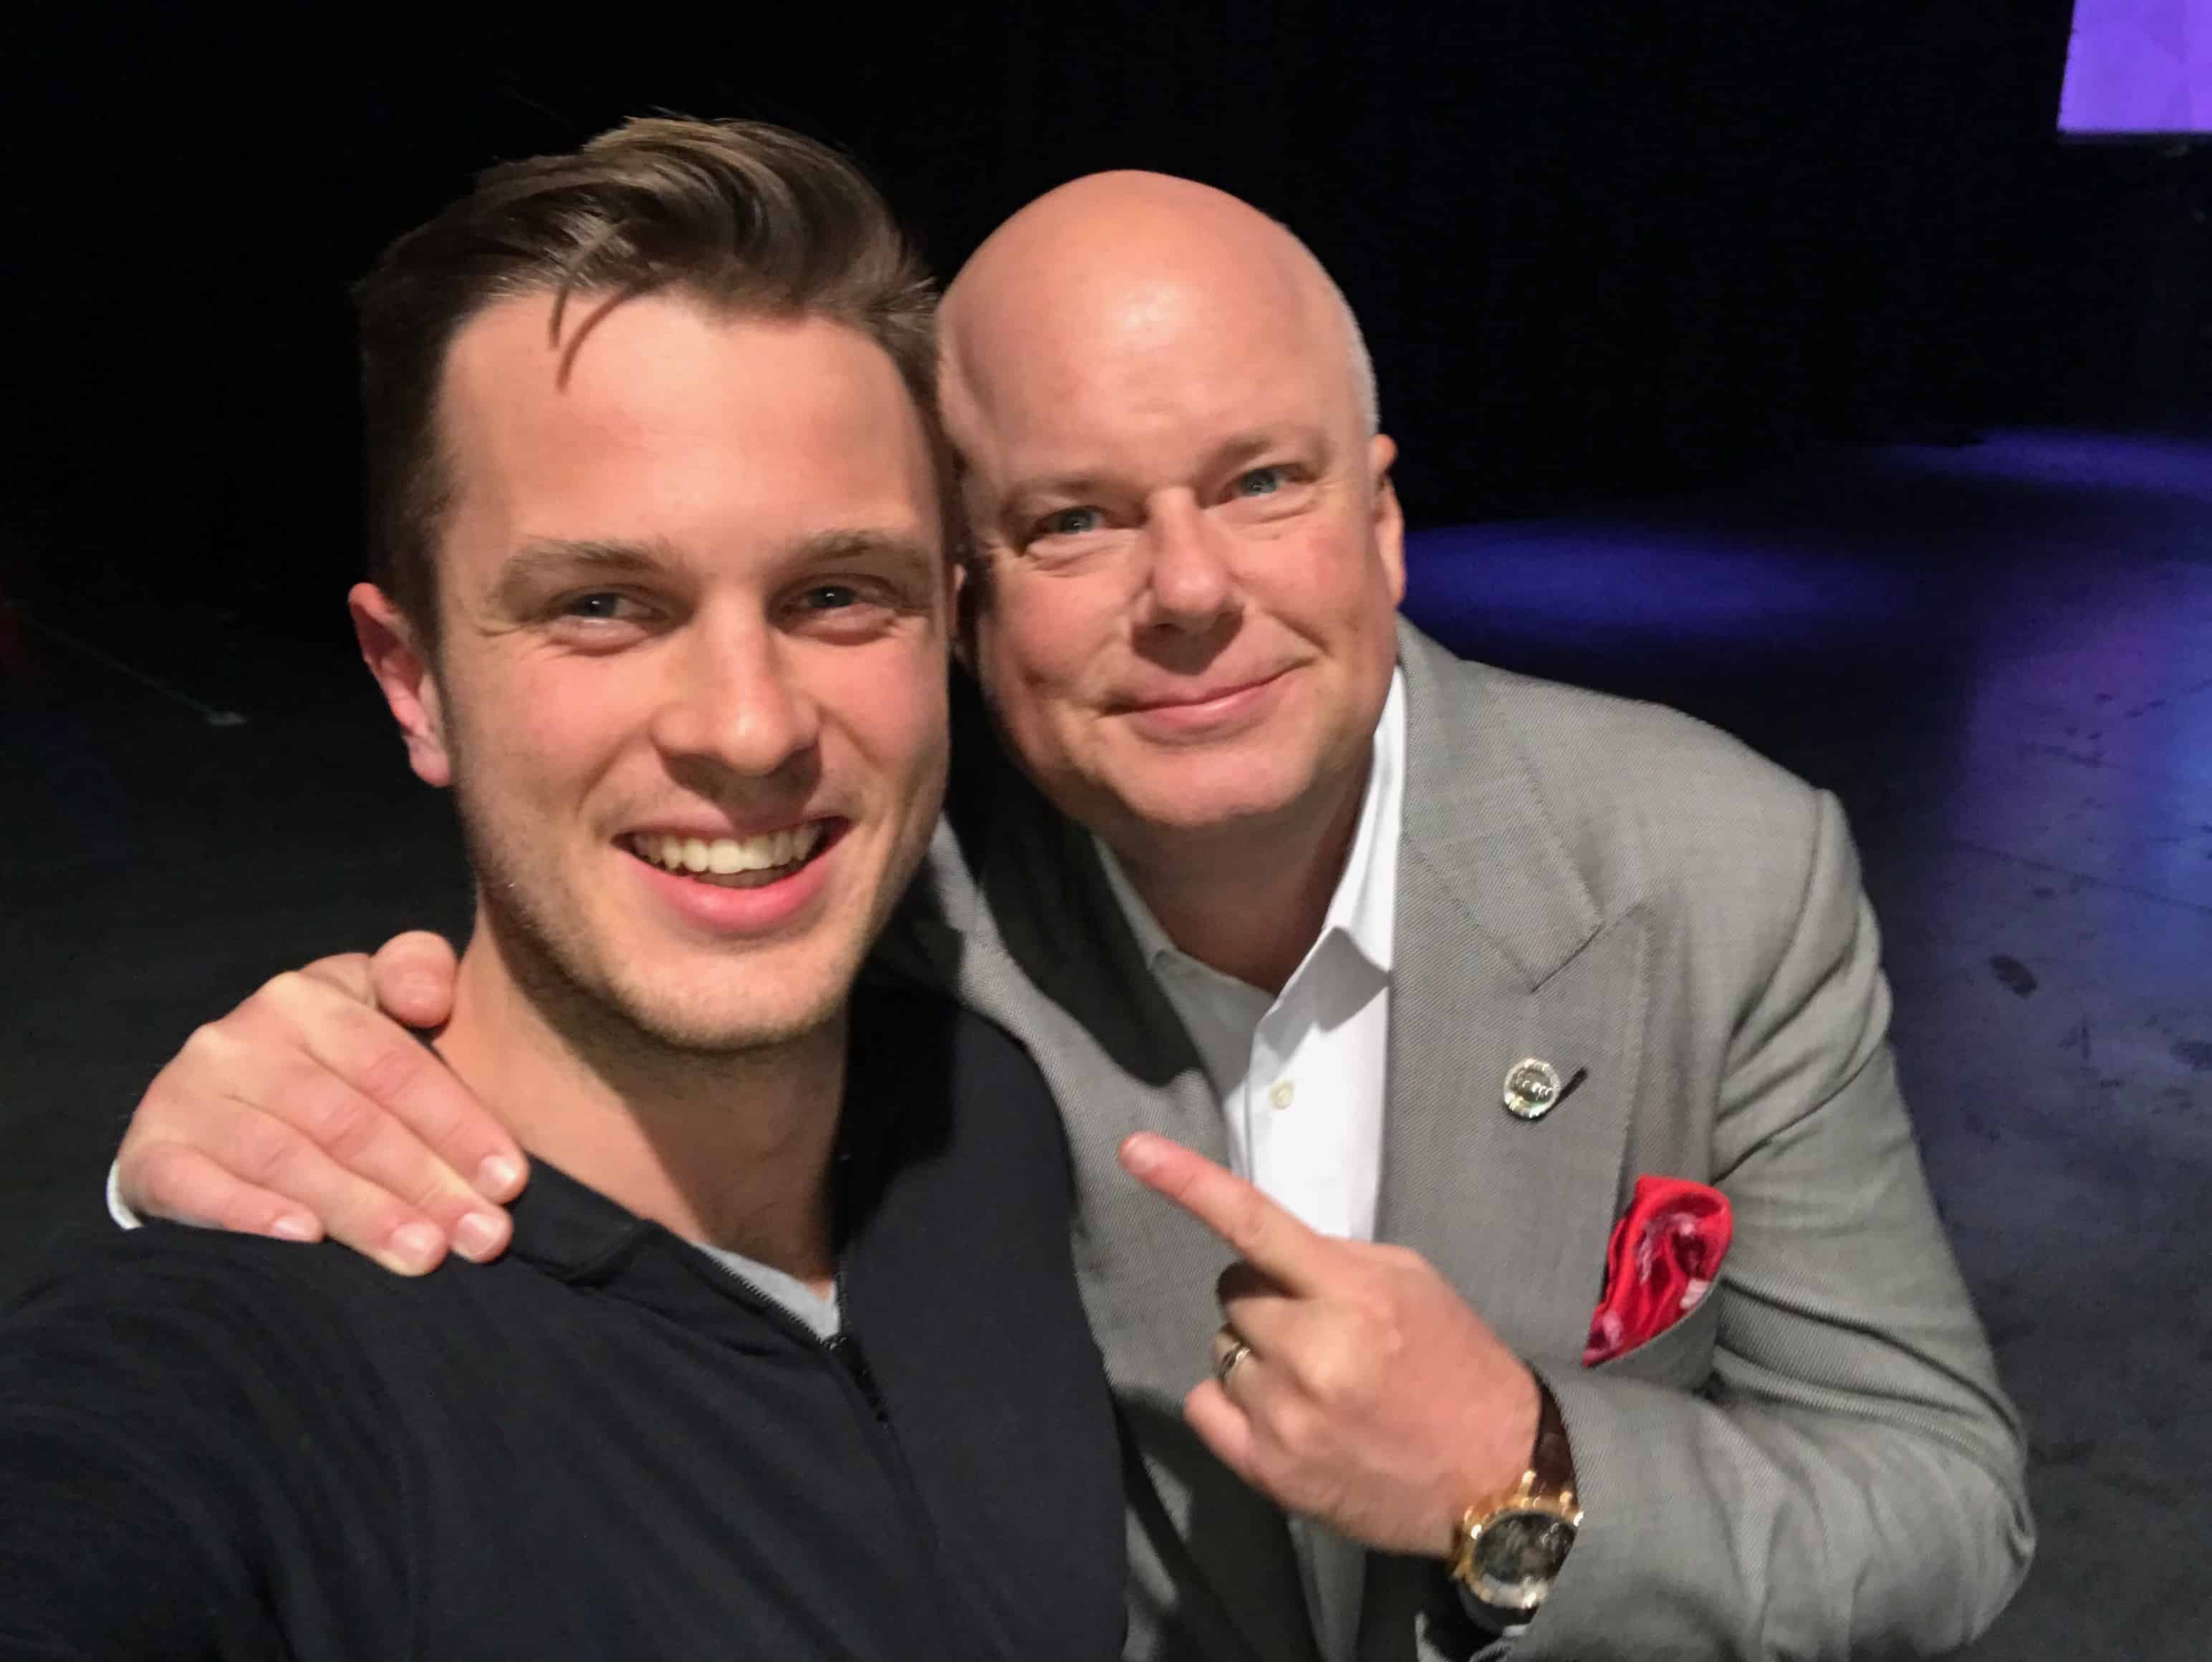 Alex King & Eric Worre Go Pro 2017 Network Marketing Pro